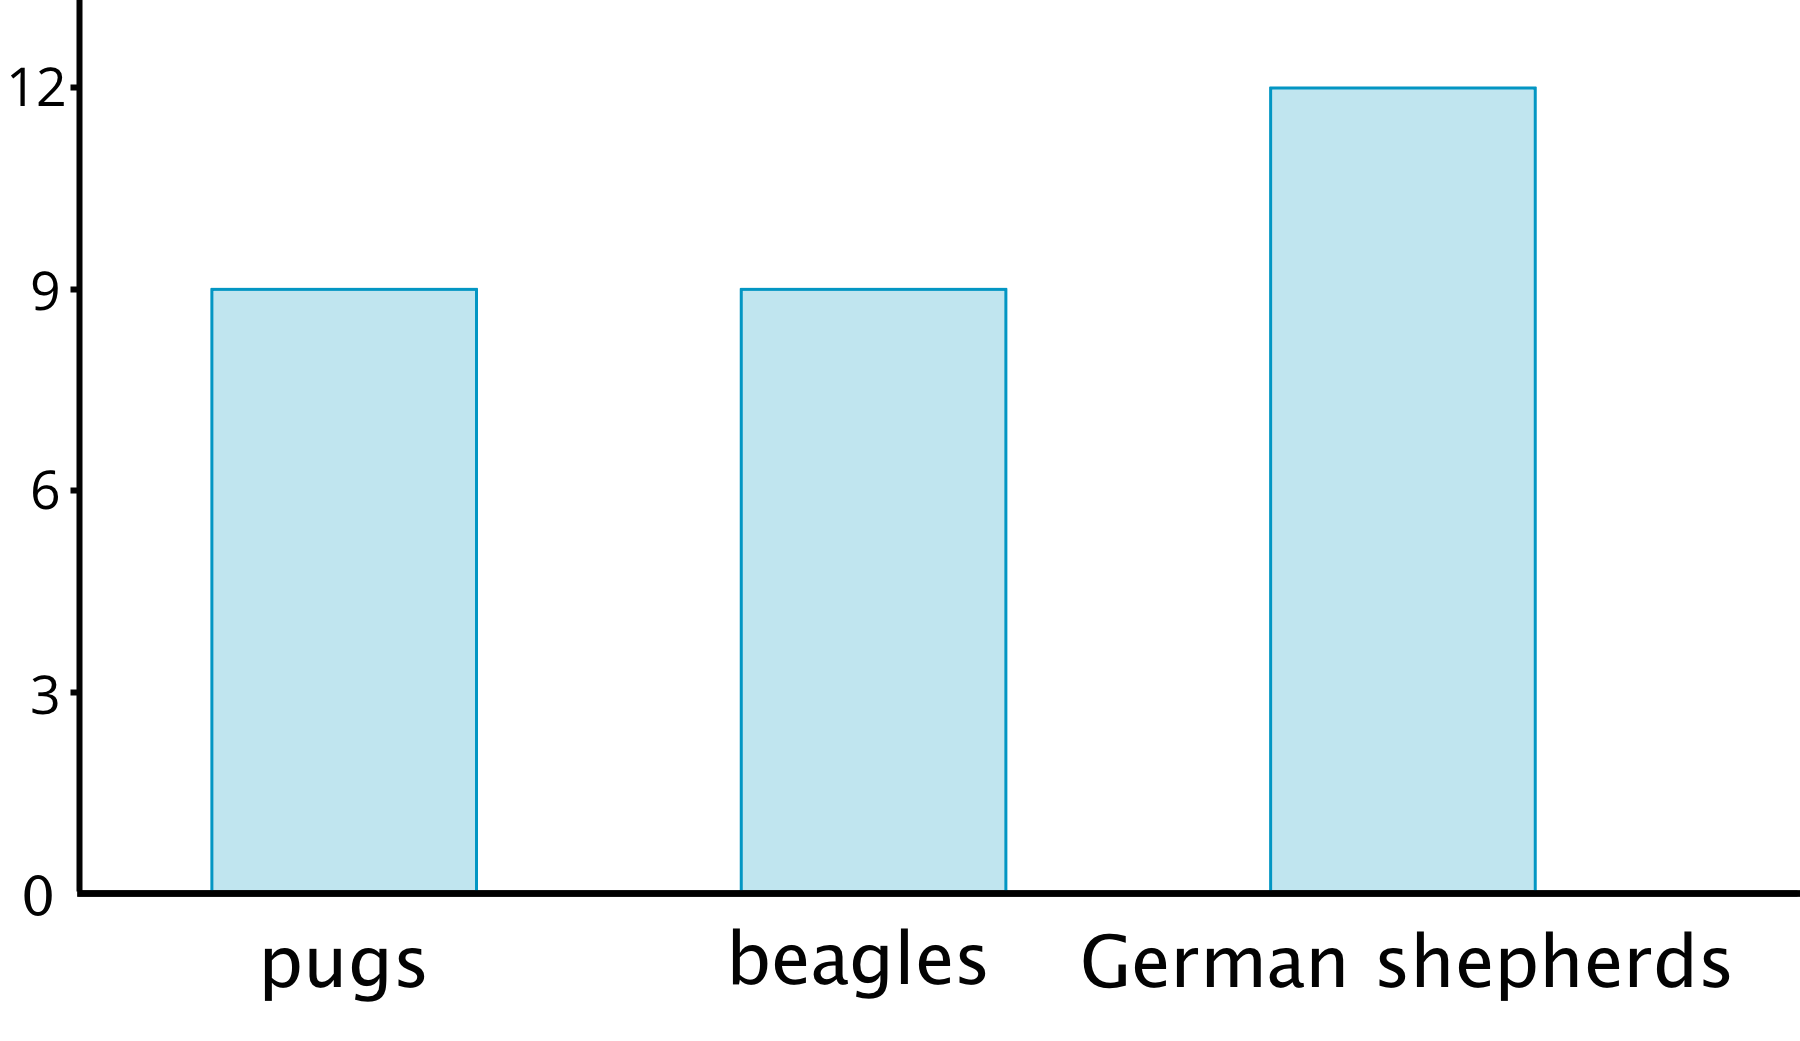 "A bar graph. The categories ""pugs"", ""beagles"", and ""German shepherds"" are labeled on the horizontal axis. The numbers 0 through 4 are indicated on the vertical axis. The data represented by the bars are as follows: pugs, 3. beagles, 3. German shepherds, 4."